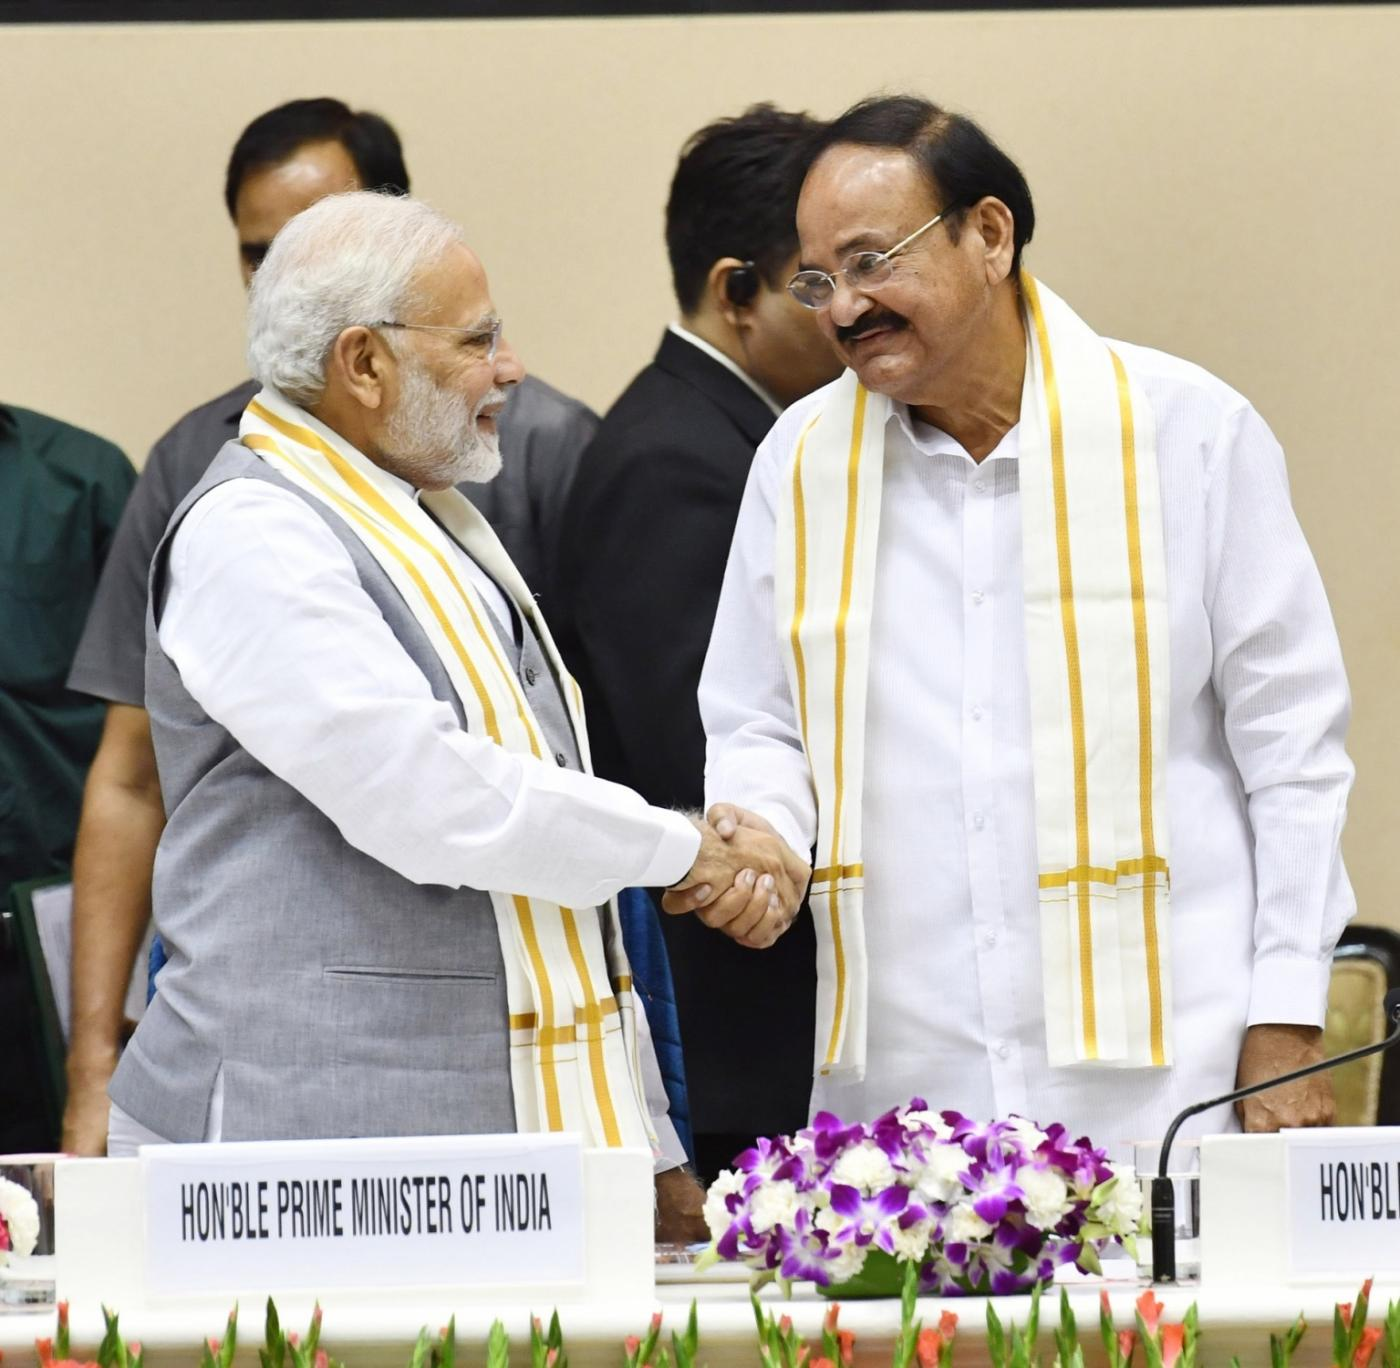 """New Delhi: Prime Minister Narendra Modi and Vice President and Rajya Sabha Chairman M. Venkaiah Naidu at the launch of """"Moving On... Moving Forward: A Year In Office"""" - a book marking the completion of Naidu's one year as the Vice President and the Rajya Sabha Chairman; in New Delhi on Sept 2, 2018. (Photo: IANS/PIB) by ."""